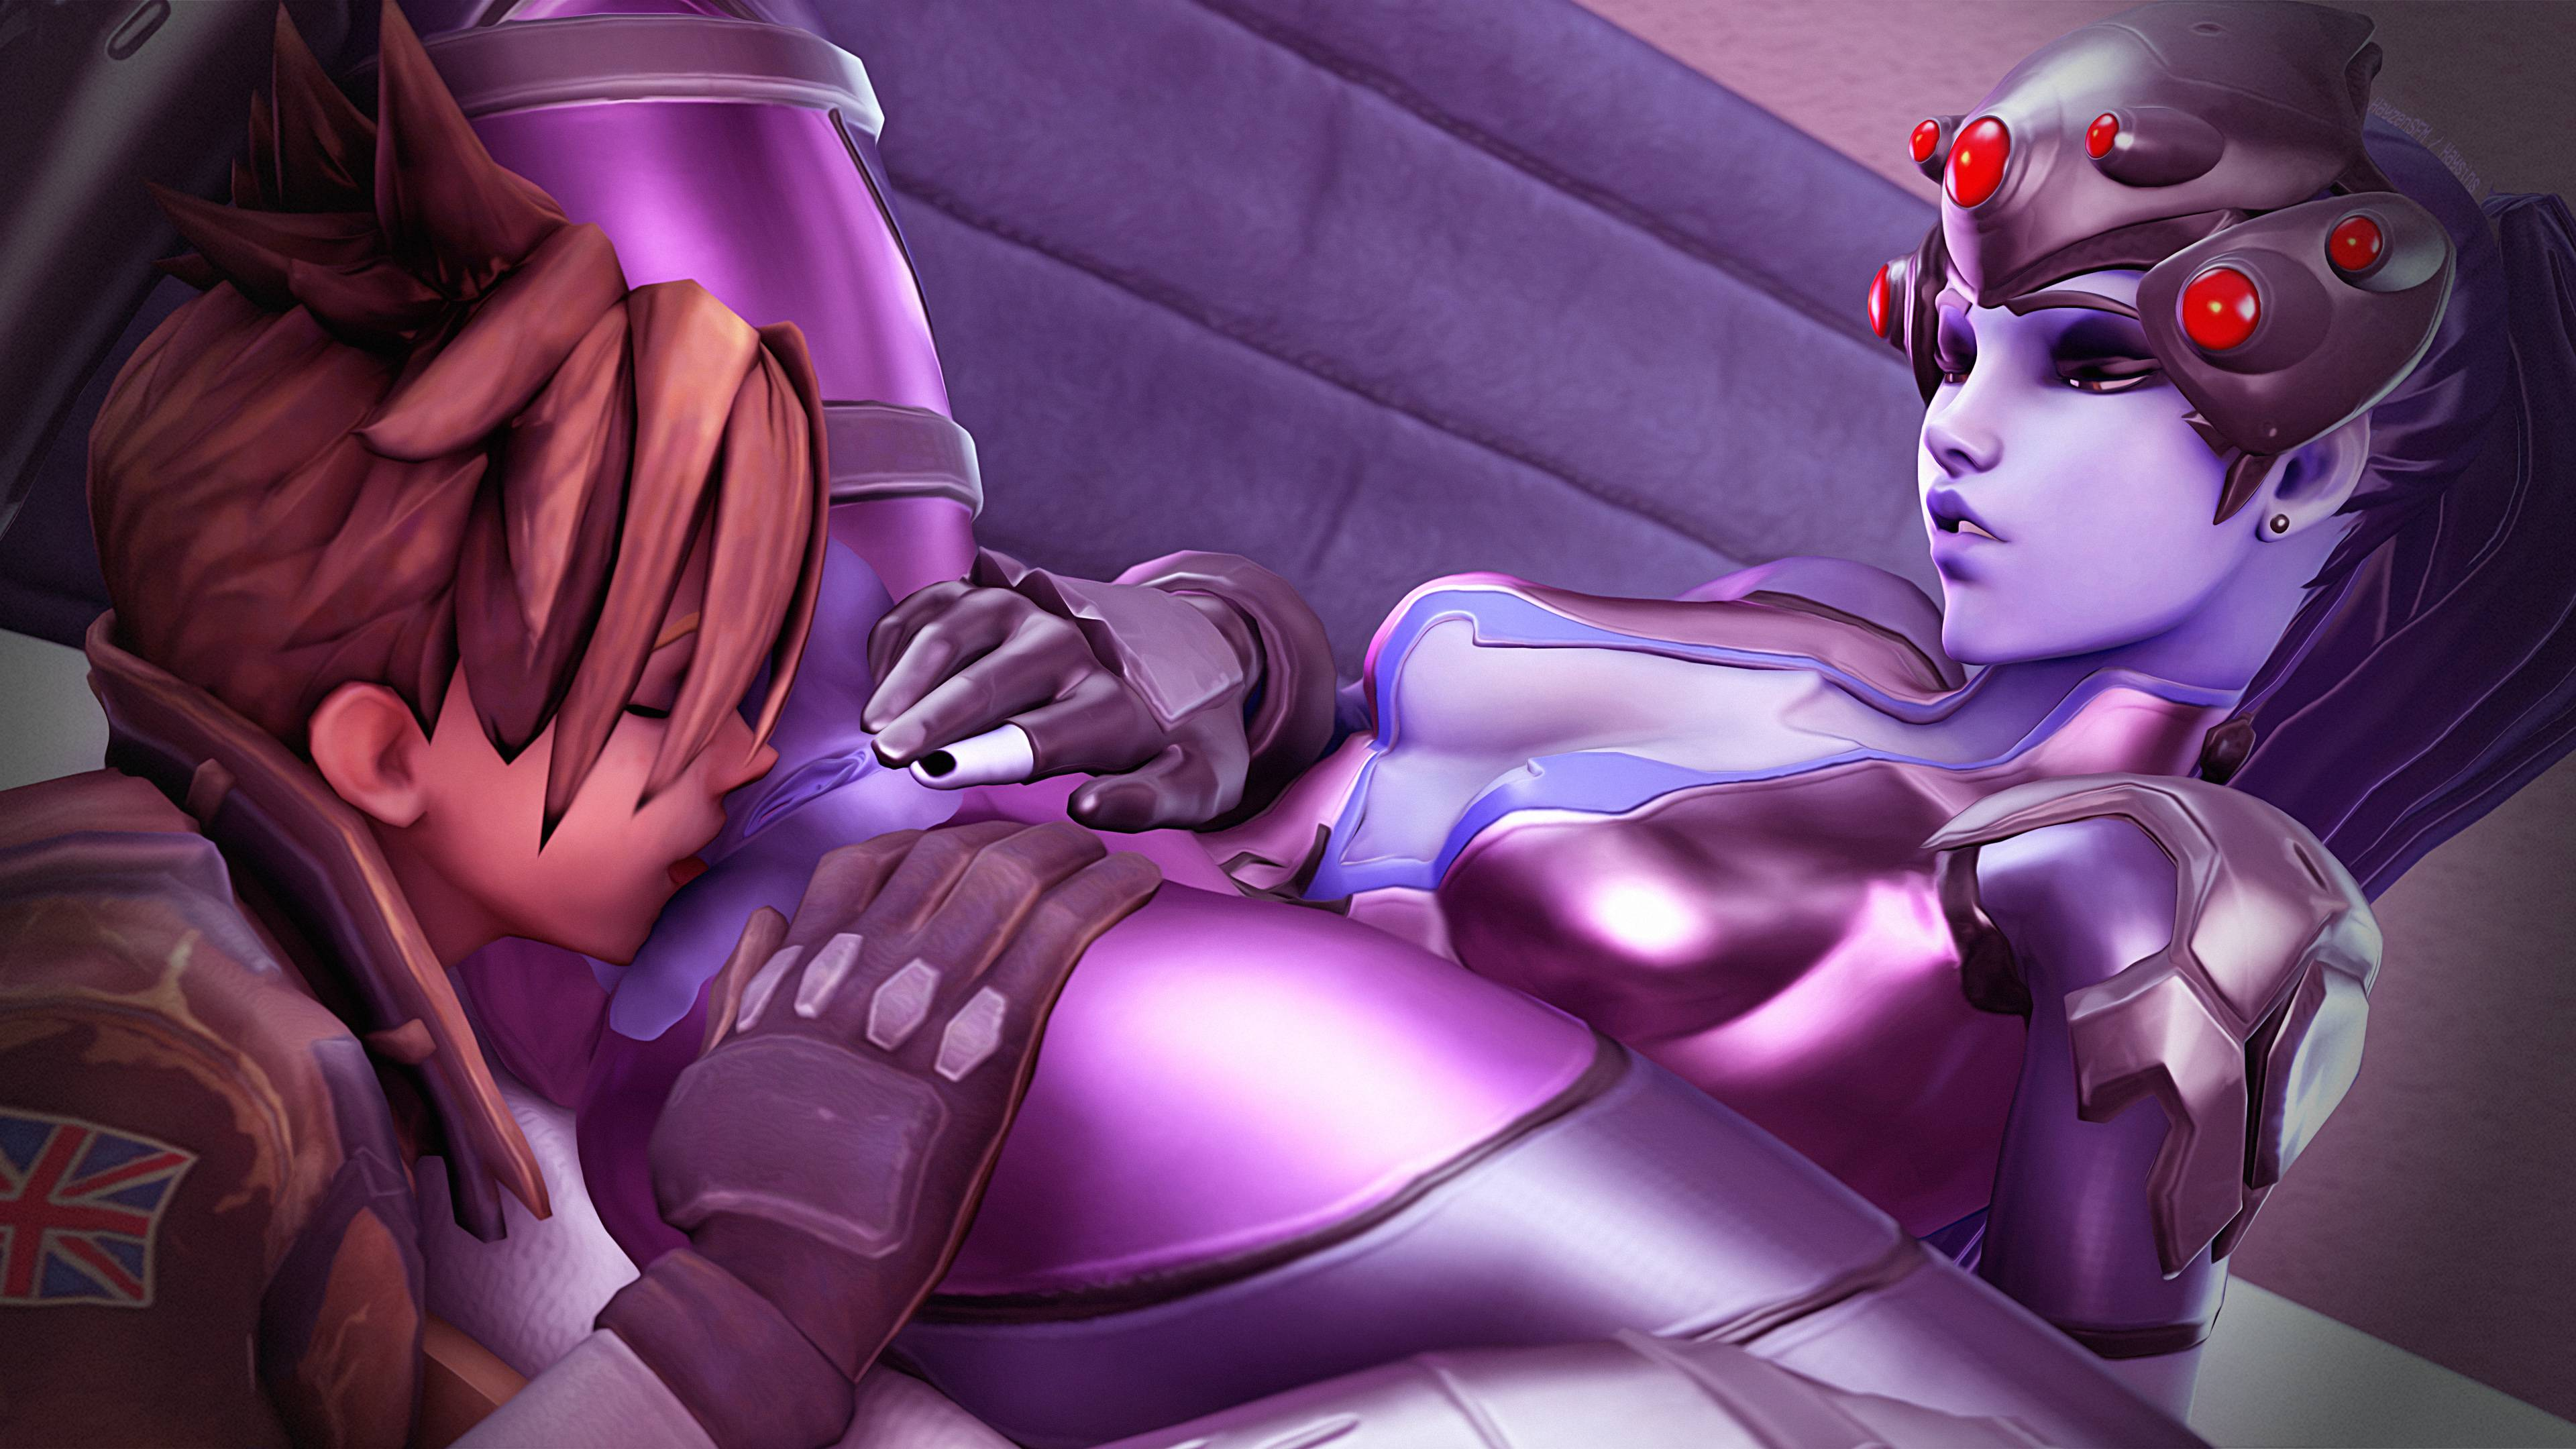 2146448 - Overlook Tracer Widowmaker haysins source_filmmaker